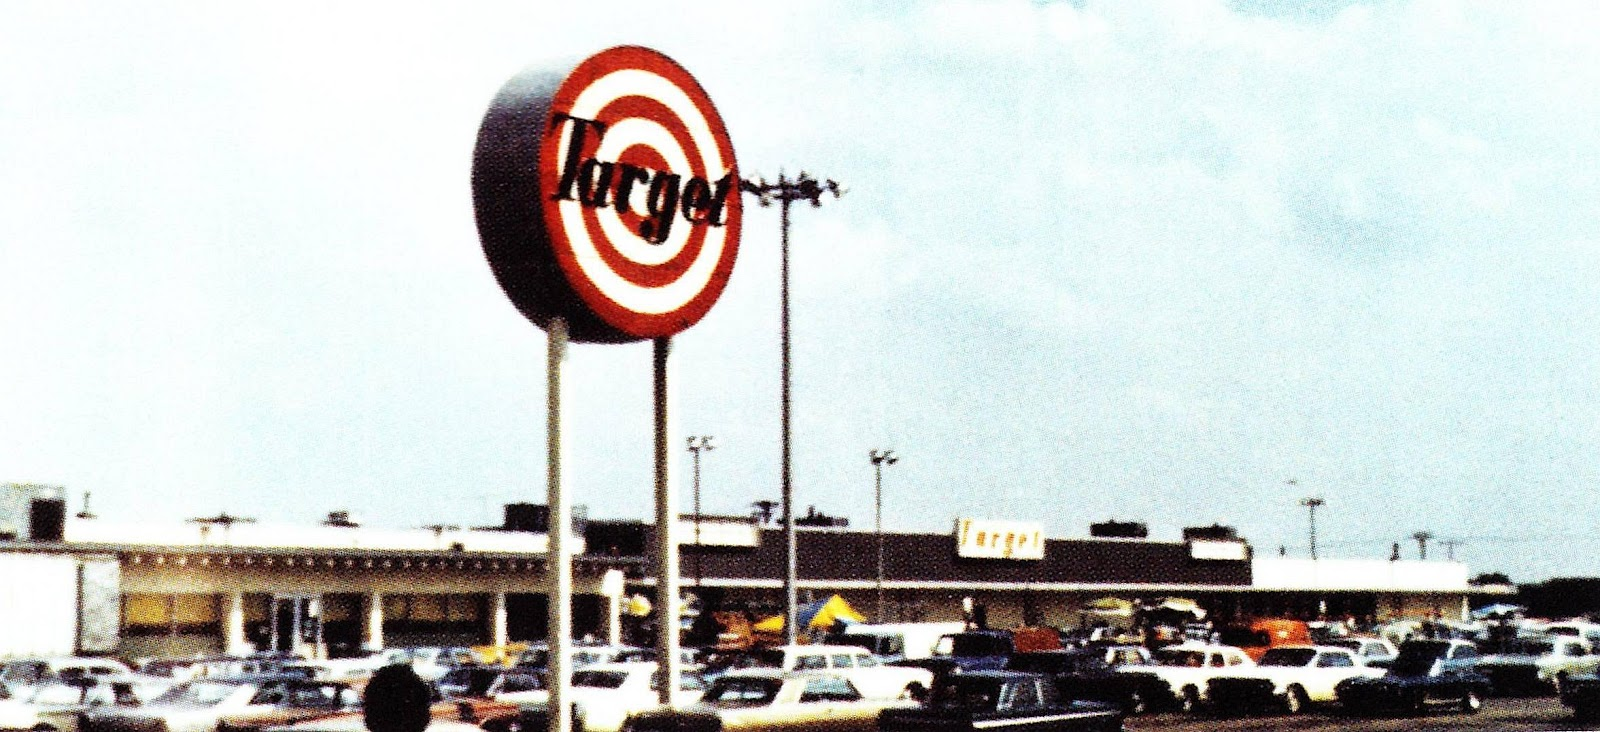 First Target Store 1962